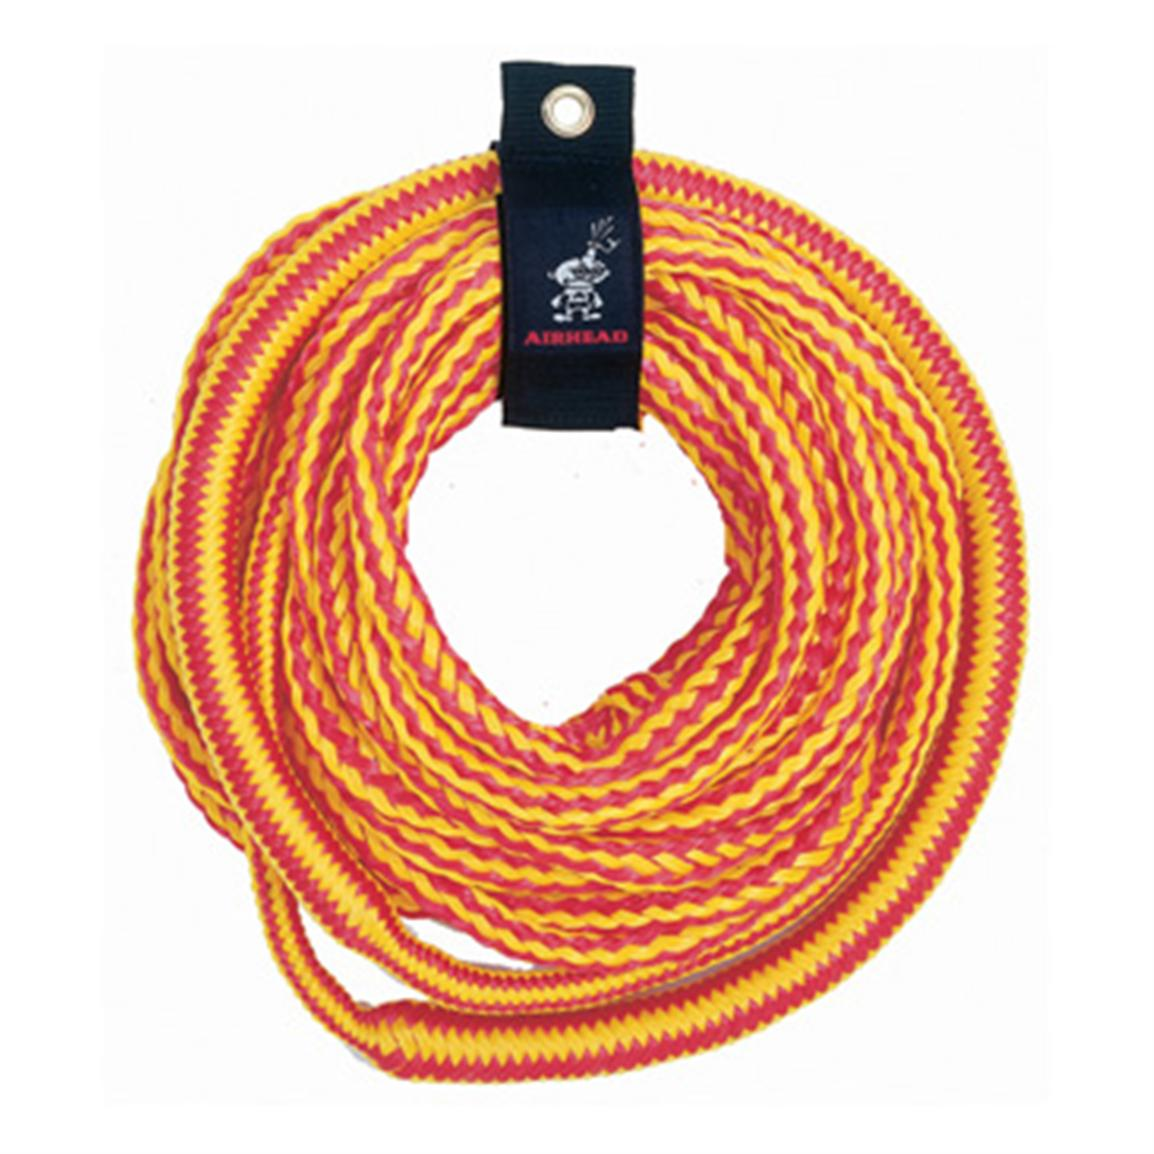 Airhead® Bungee Tube Tow Rope